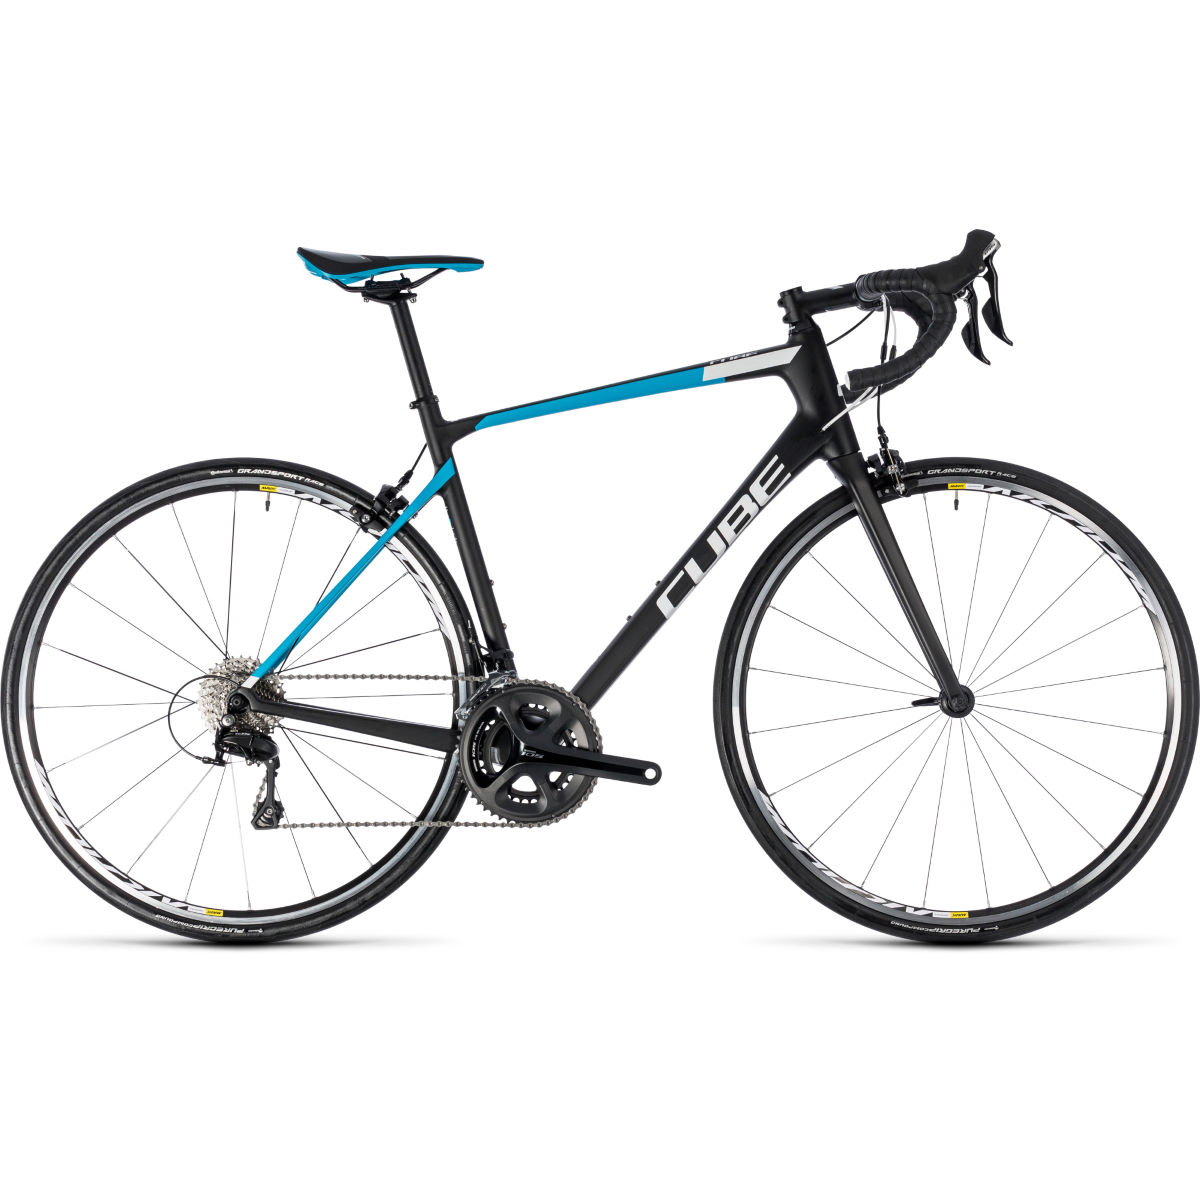 Vélo de route Cube Attain GTC Pro - 56cm Stock Bike Noir/Bleu